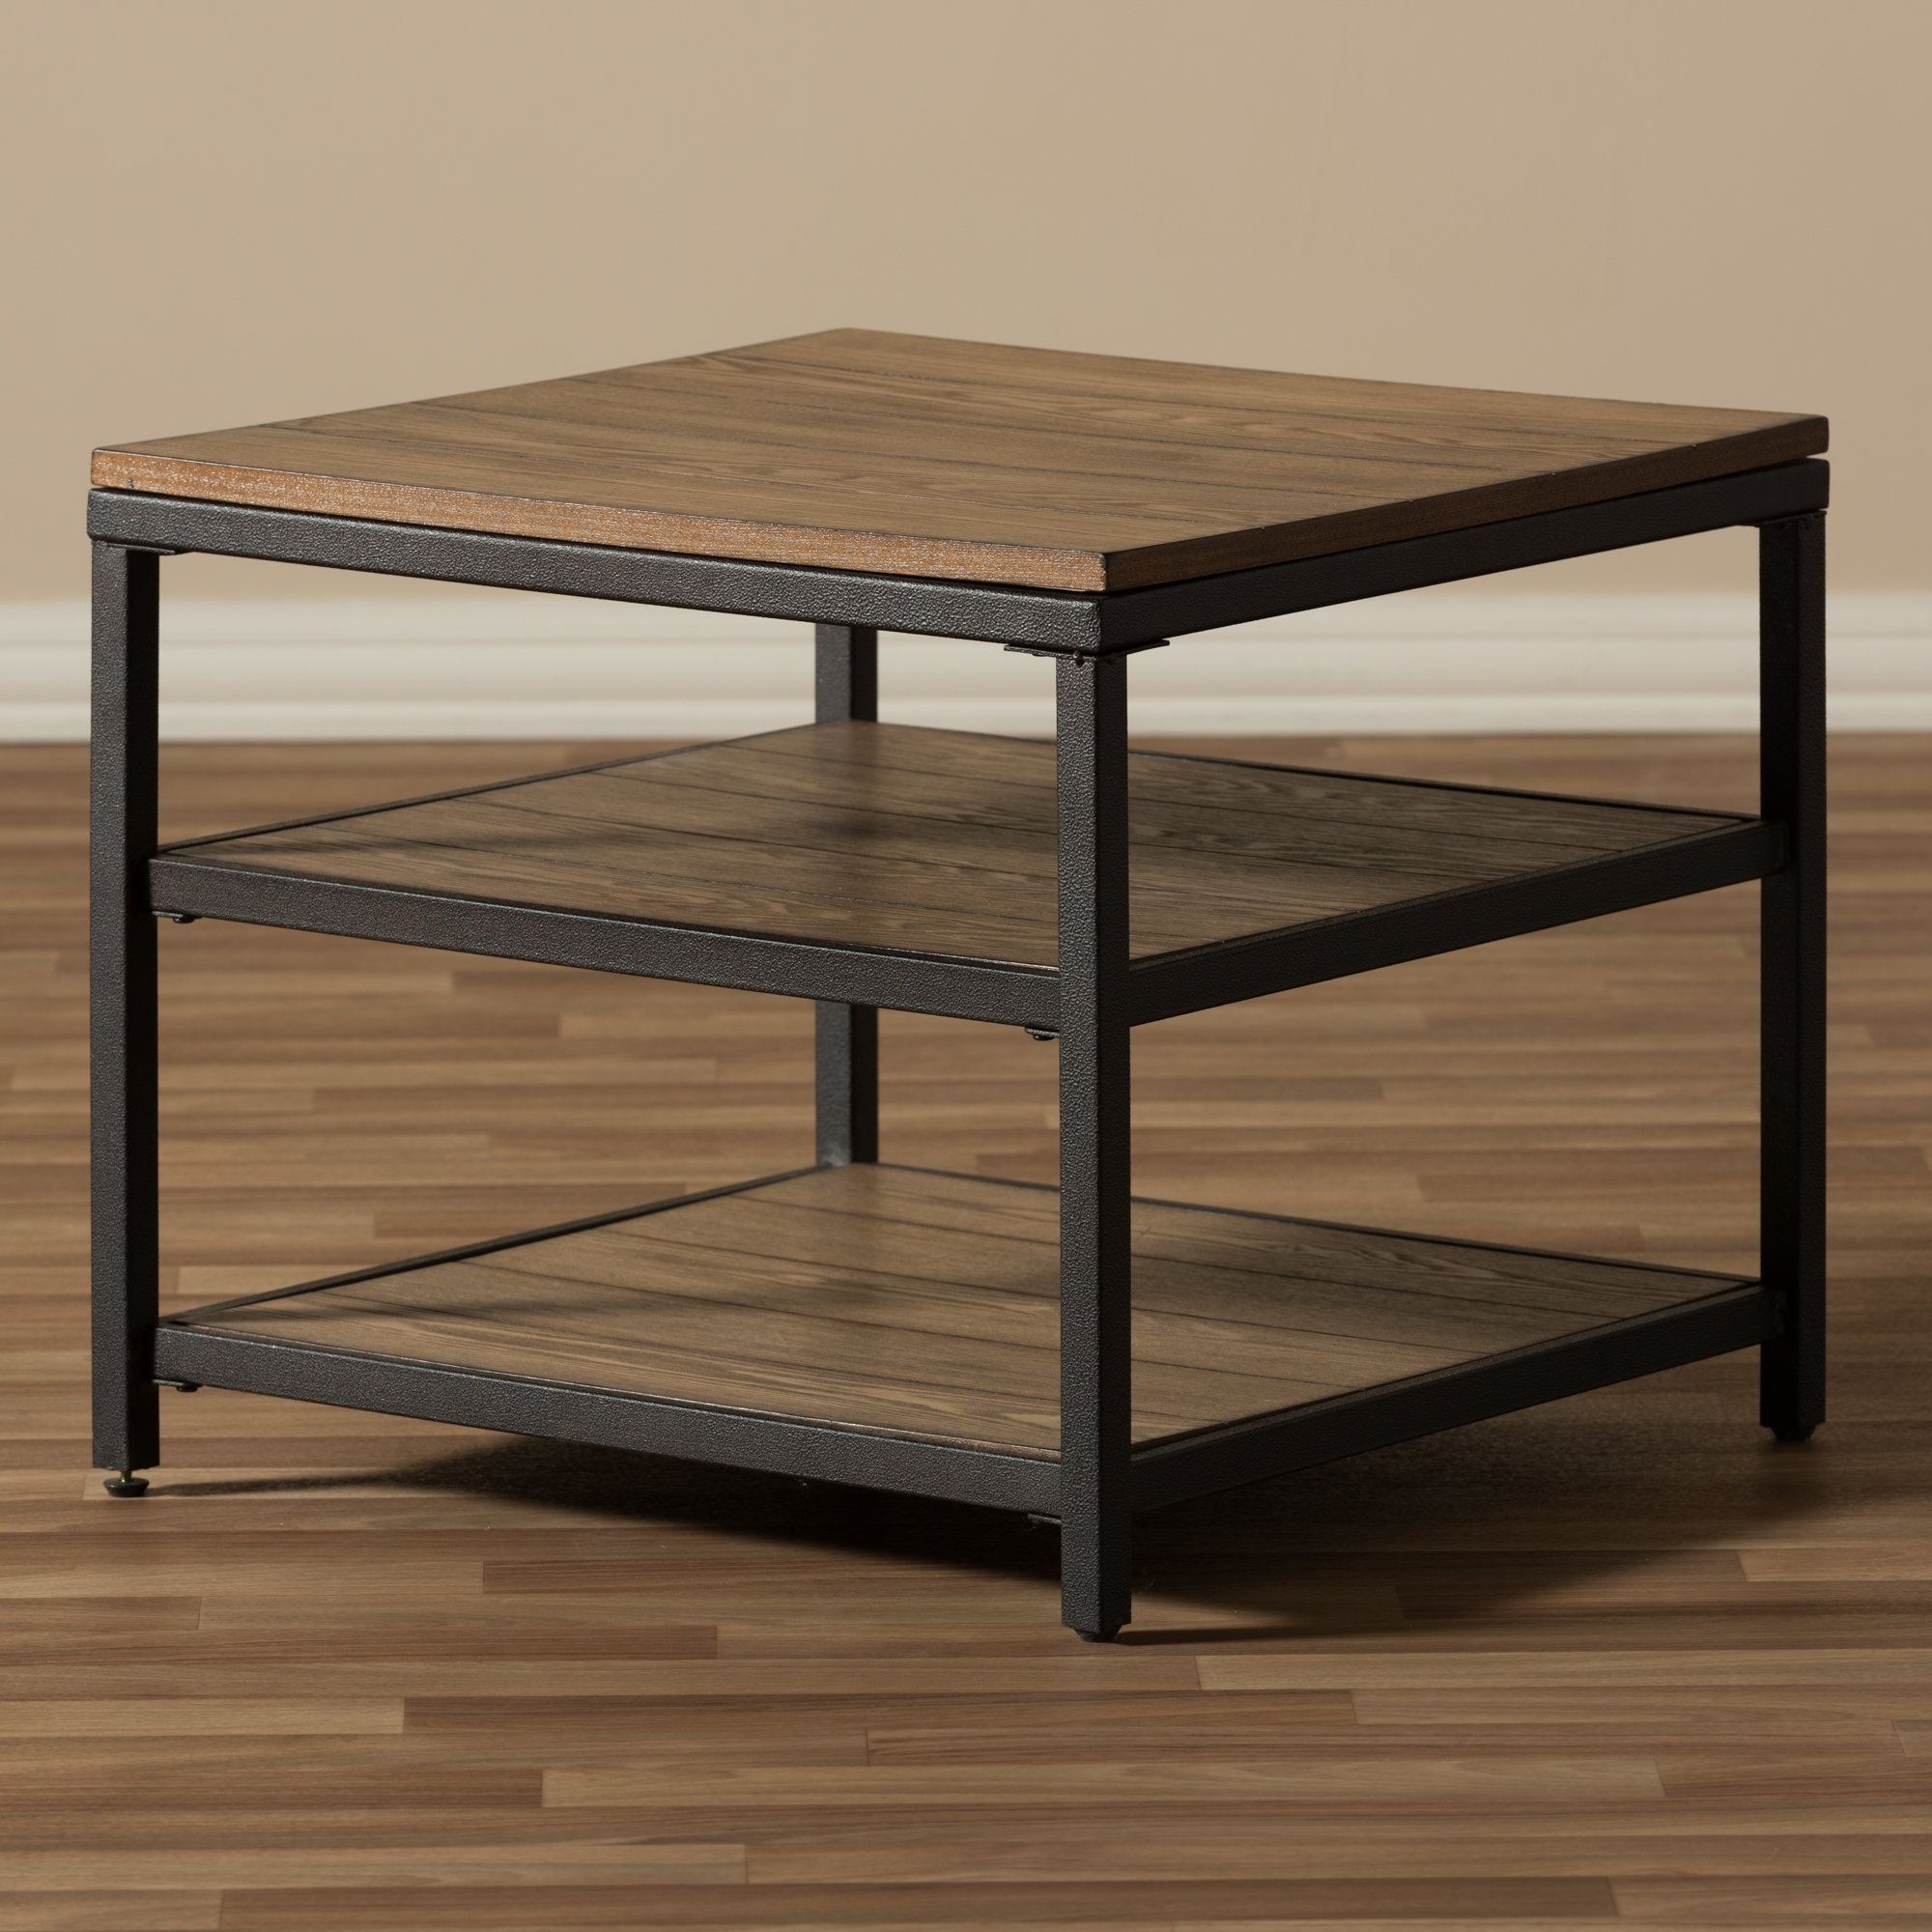 Laurel Foundry Modern Farmhouse Schmitt End Table & Reviews | Wayfair for Large-Scale Chinese Farmhouse Coffee Tables (Image 22 of 30)